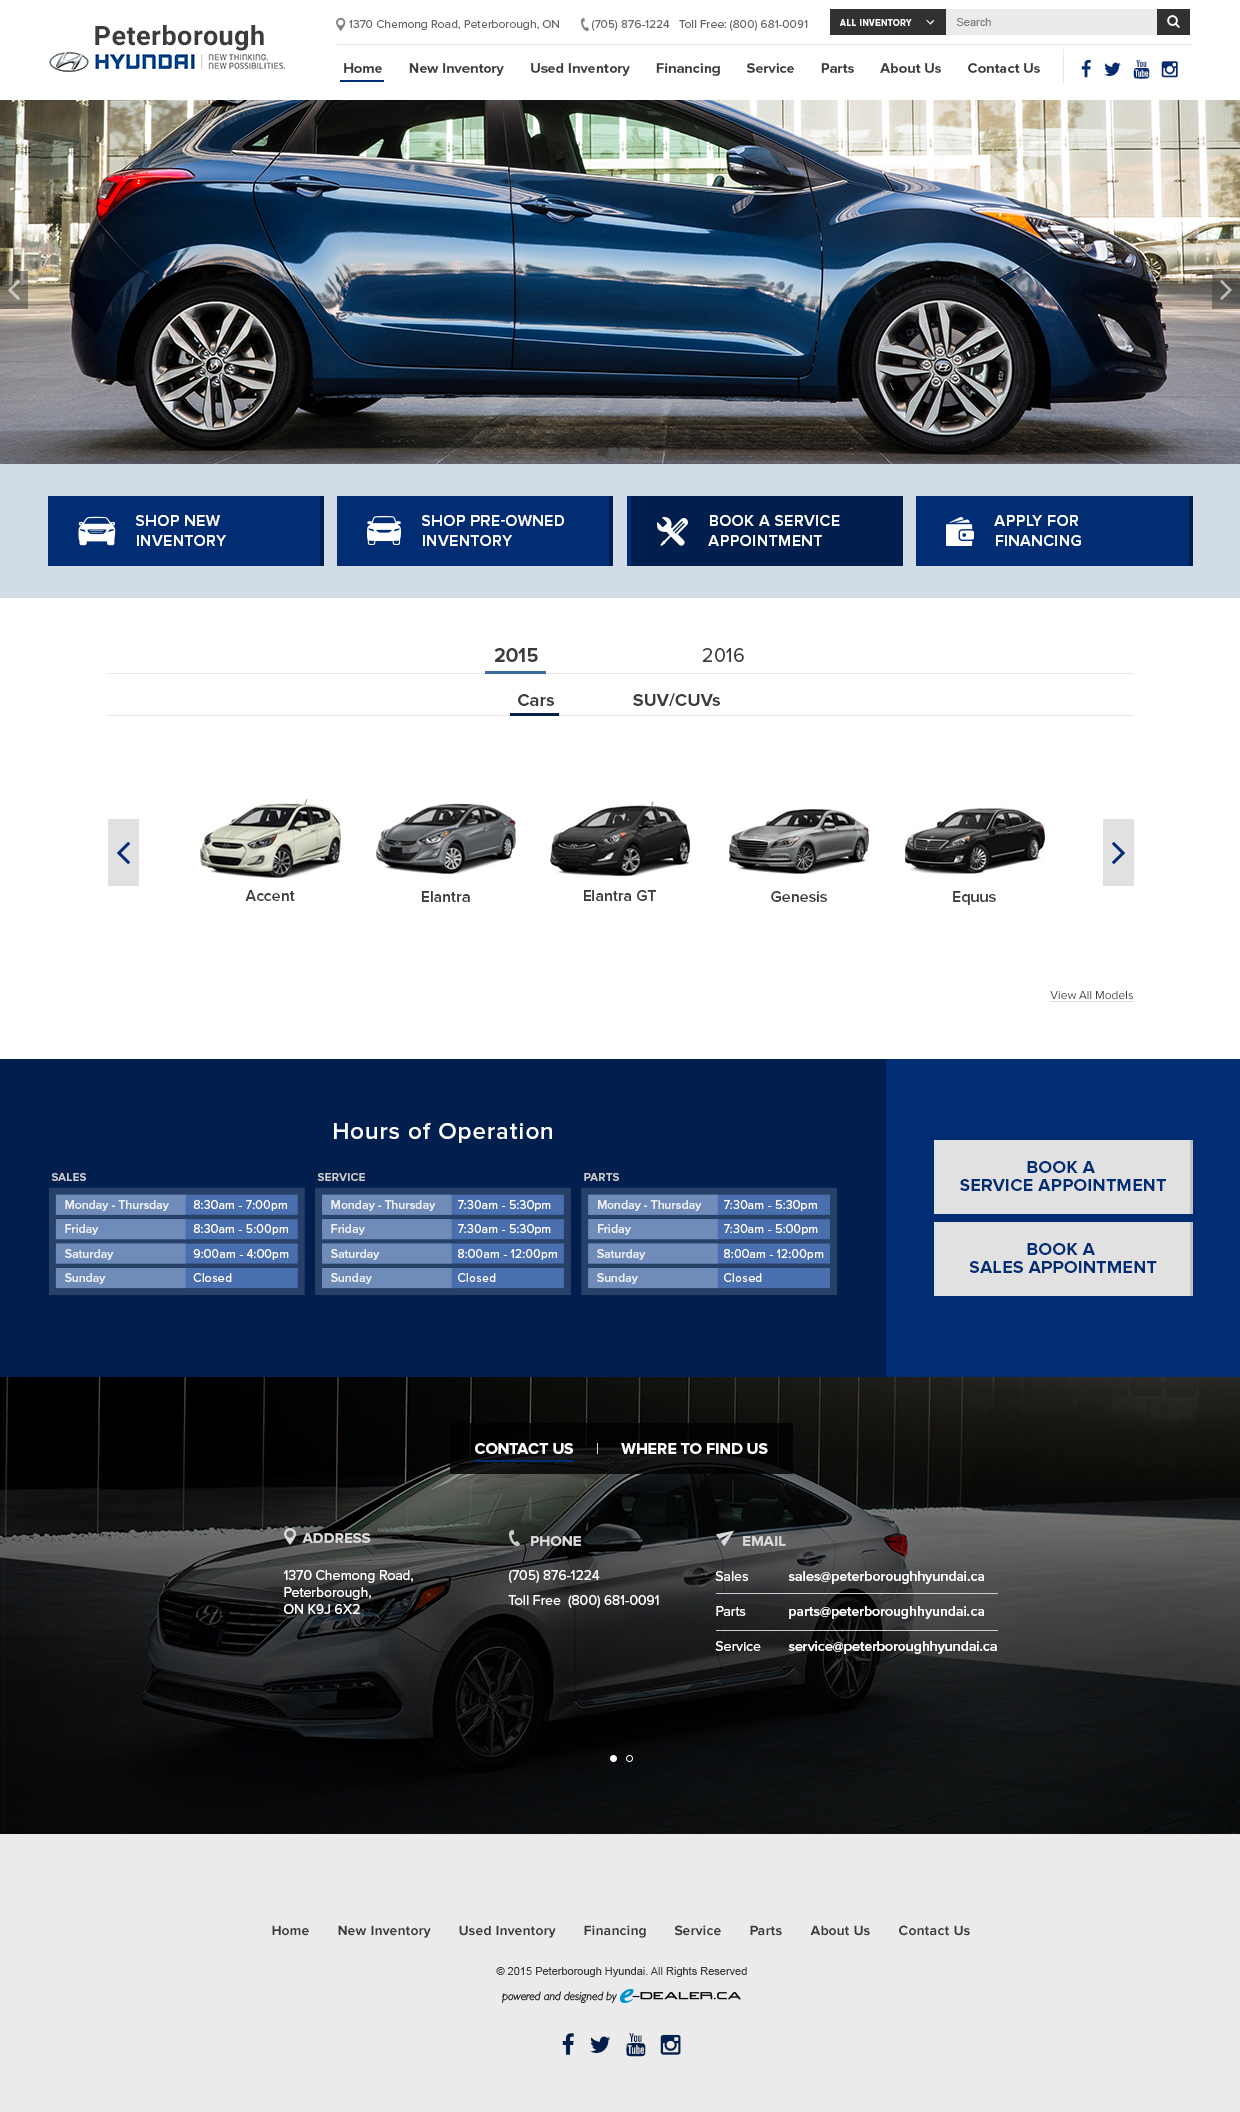 PeterboroughHyundai-design